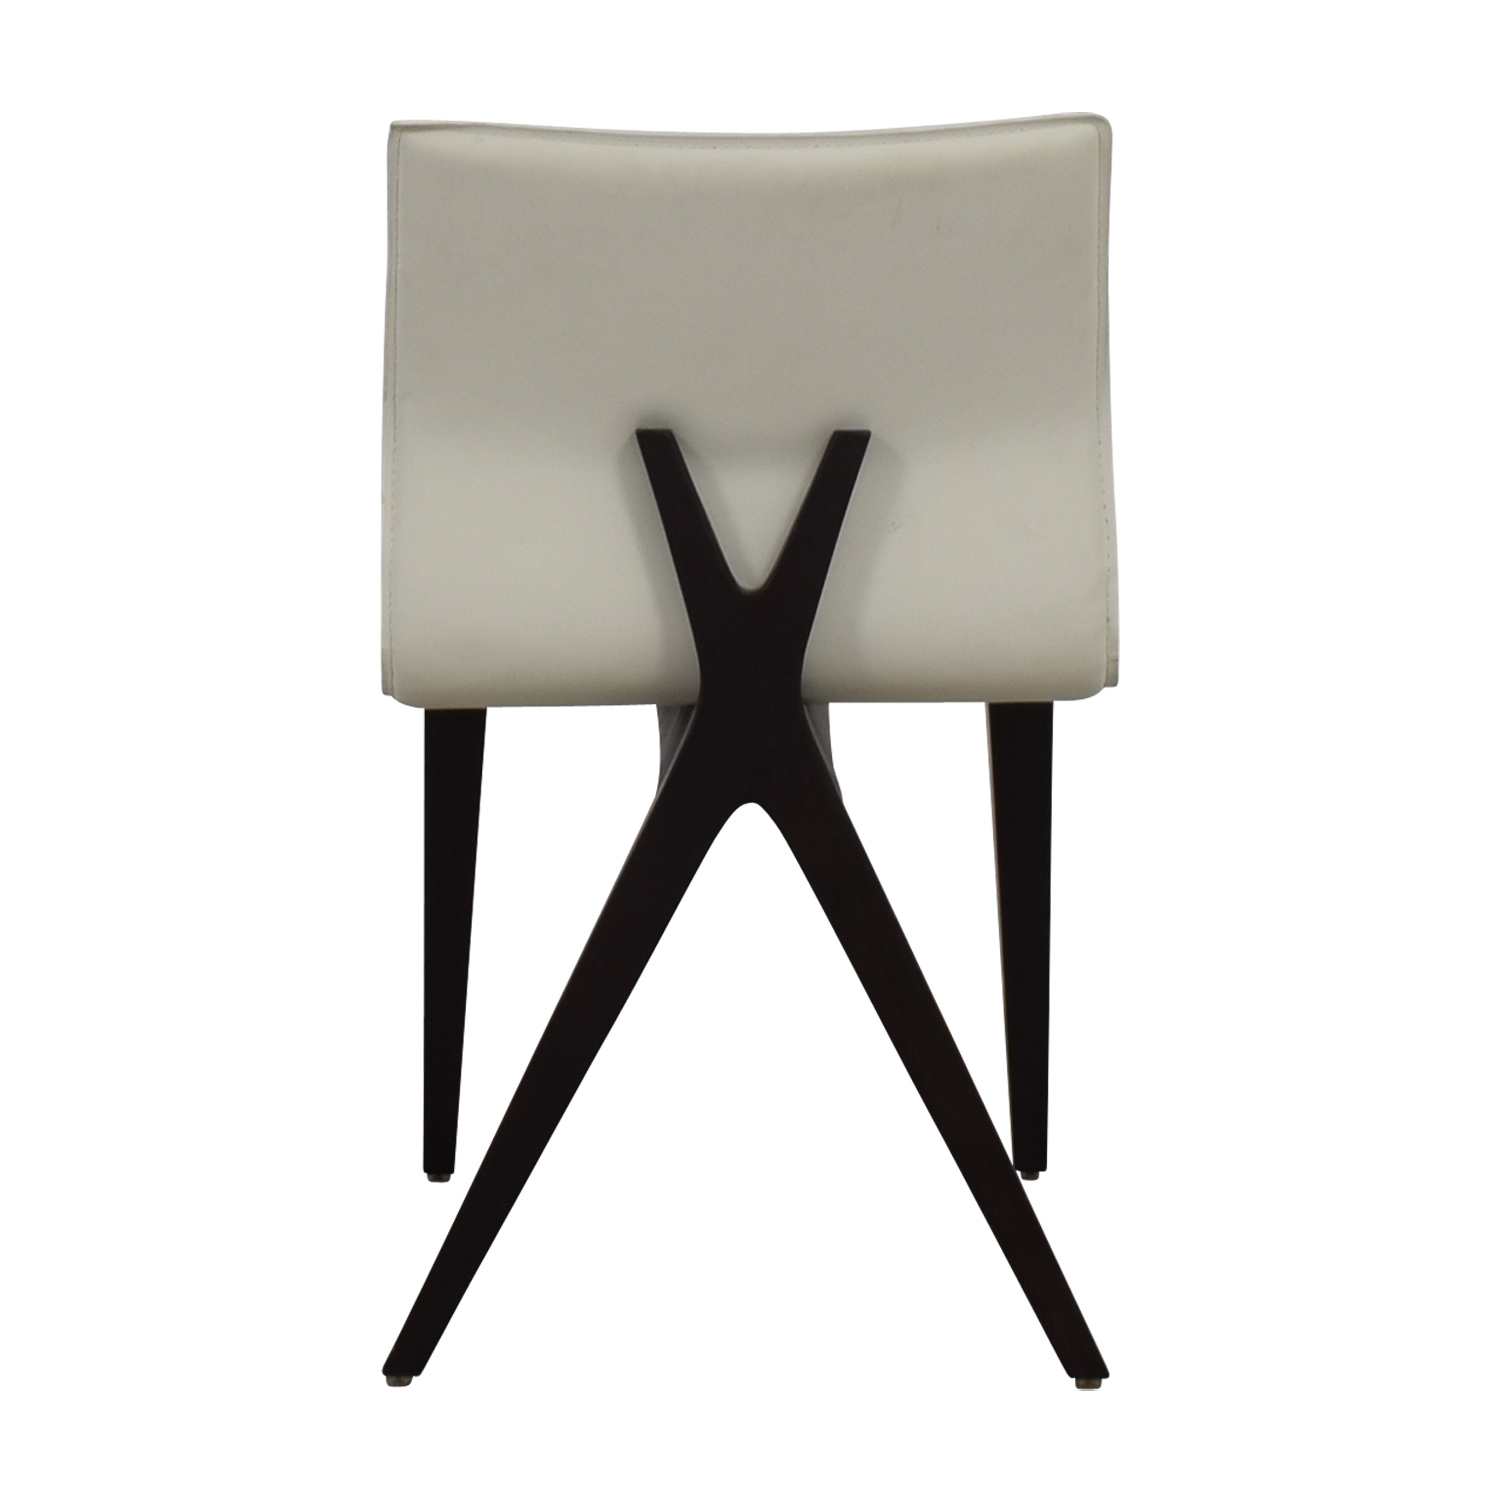 Cliff Young Cliff Young X-Back White Leather Chair on sale